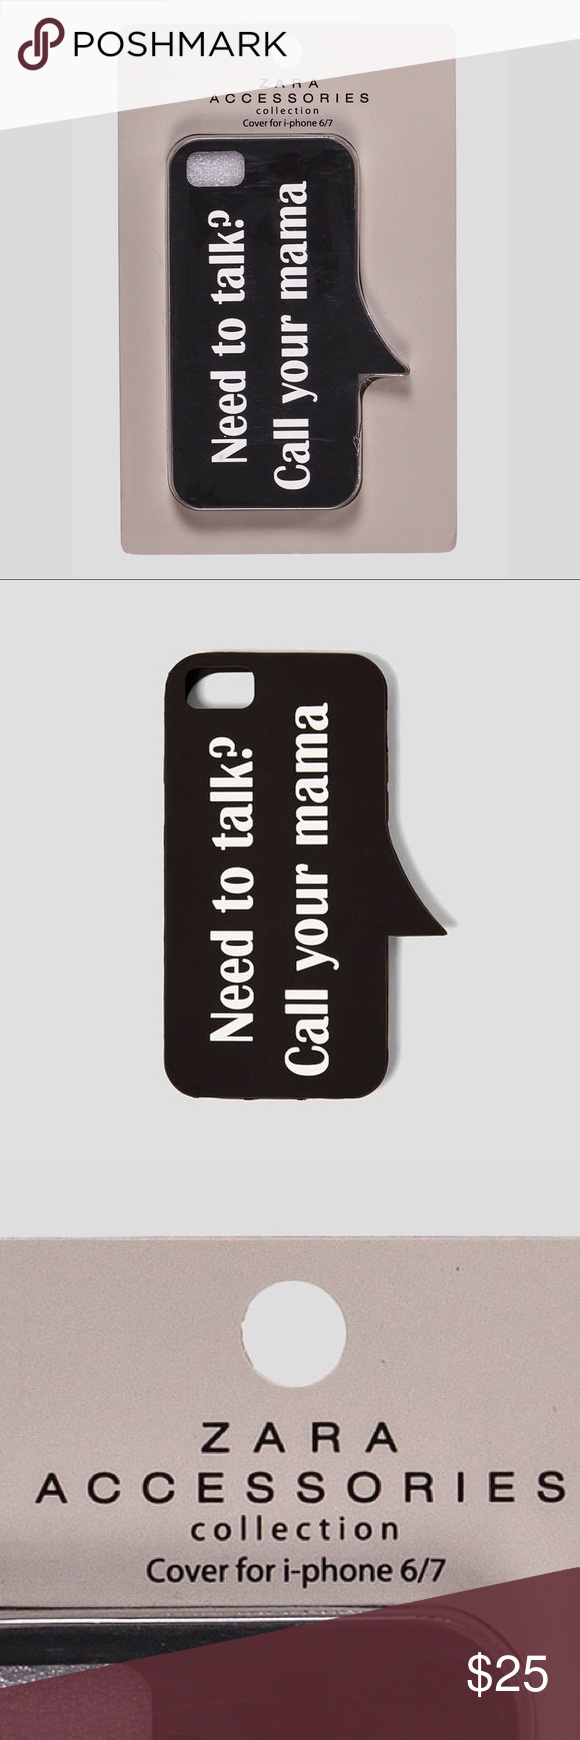 Zara Call Your Mom Iphone 6 7 Phone Case Nwt Nwt Zara Black Rubber Graphic Phone Case For Iphone 6 7 With Phone Case Accessories Iphone Cases Cute Cases